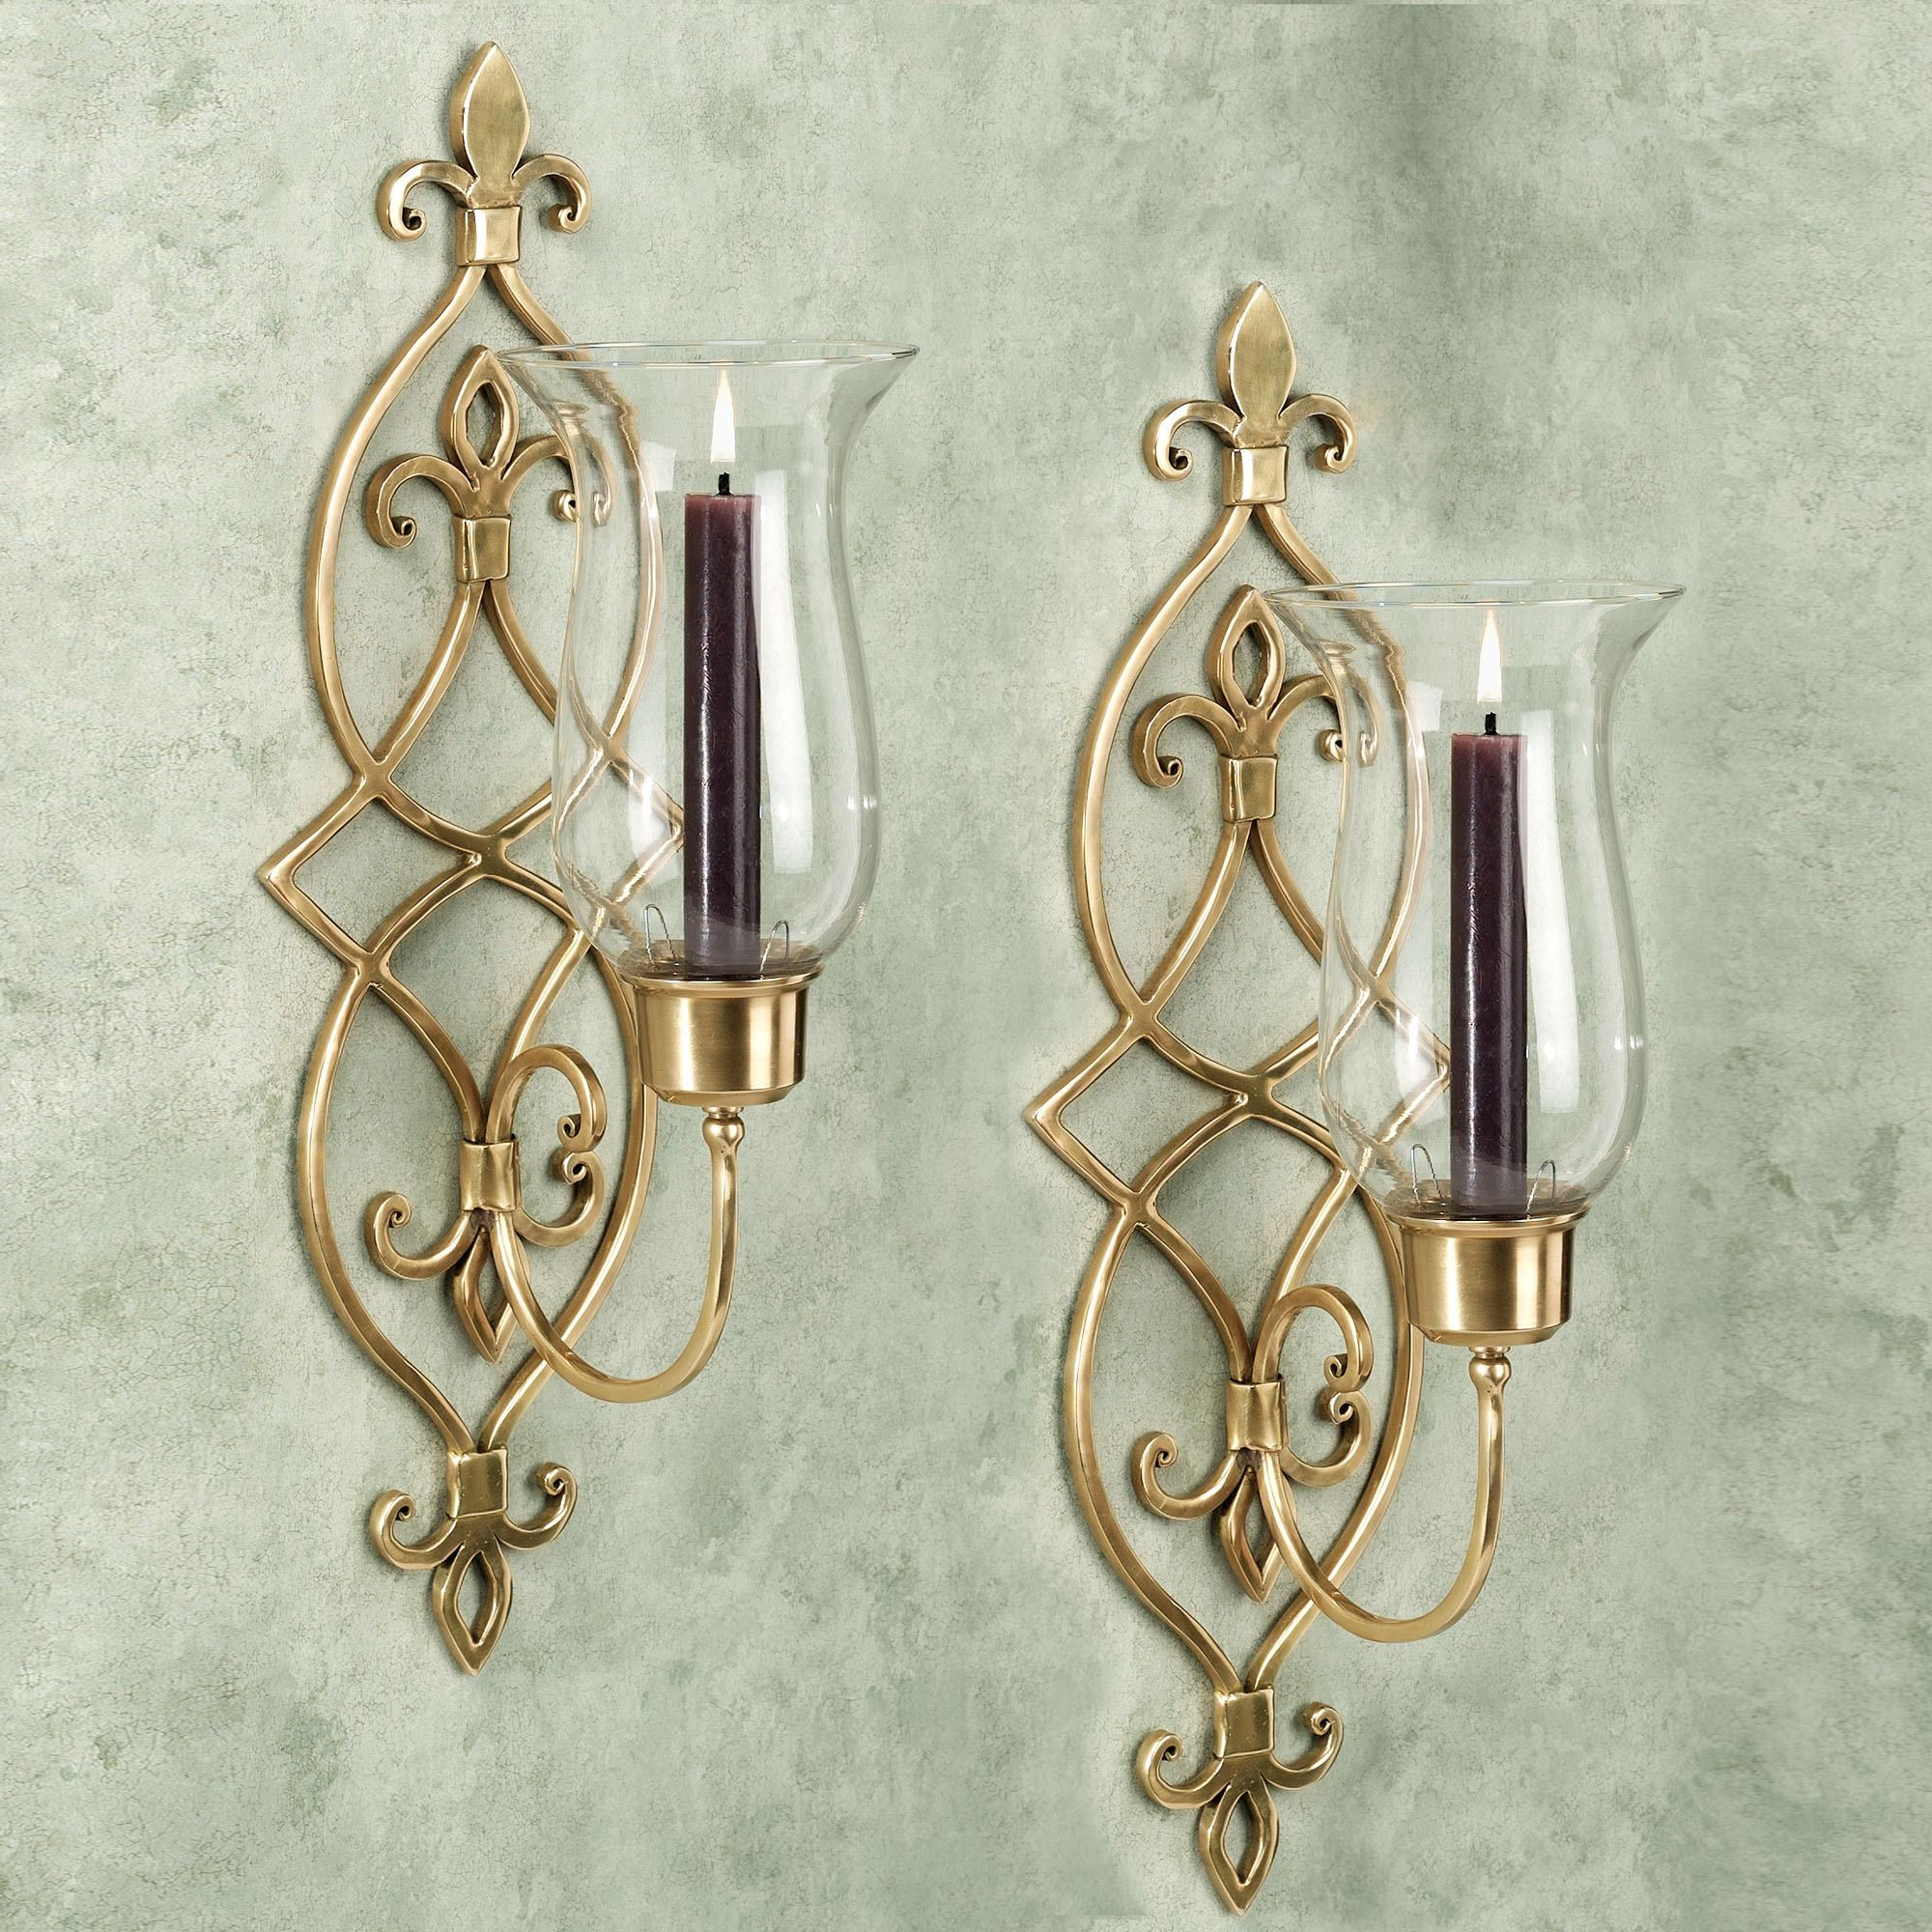 moderne brass agne priced lighting attributed with each two glass art sconce hans cut jakobsen continental arms swedish to sconces support on product a either side wall shade